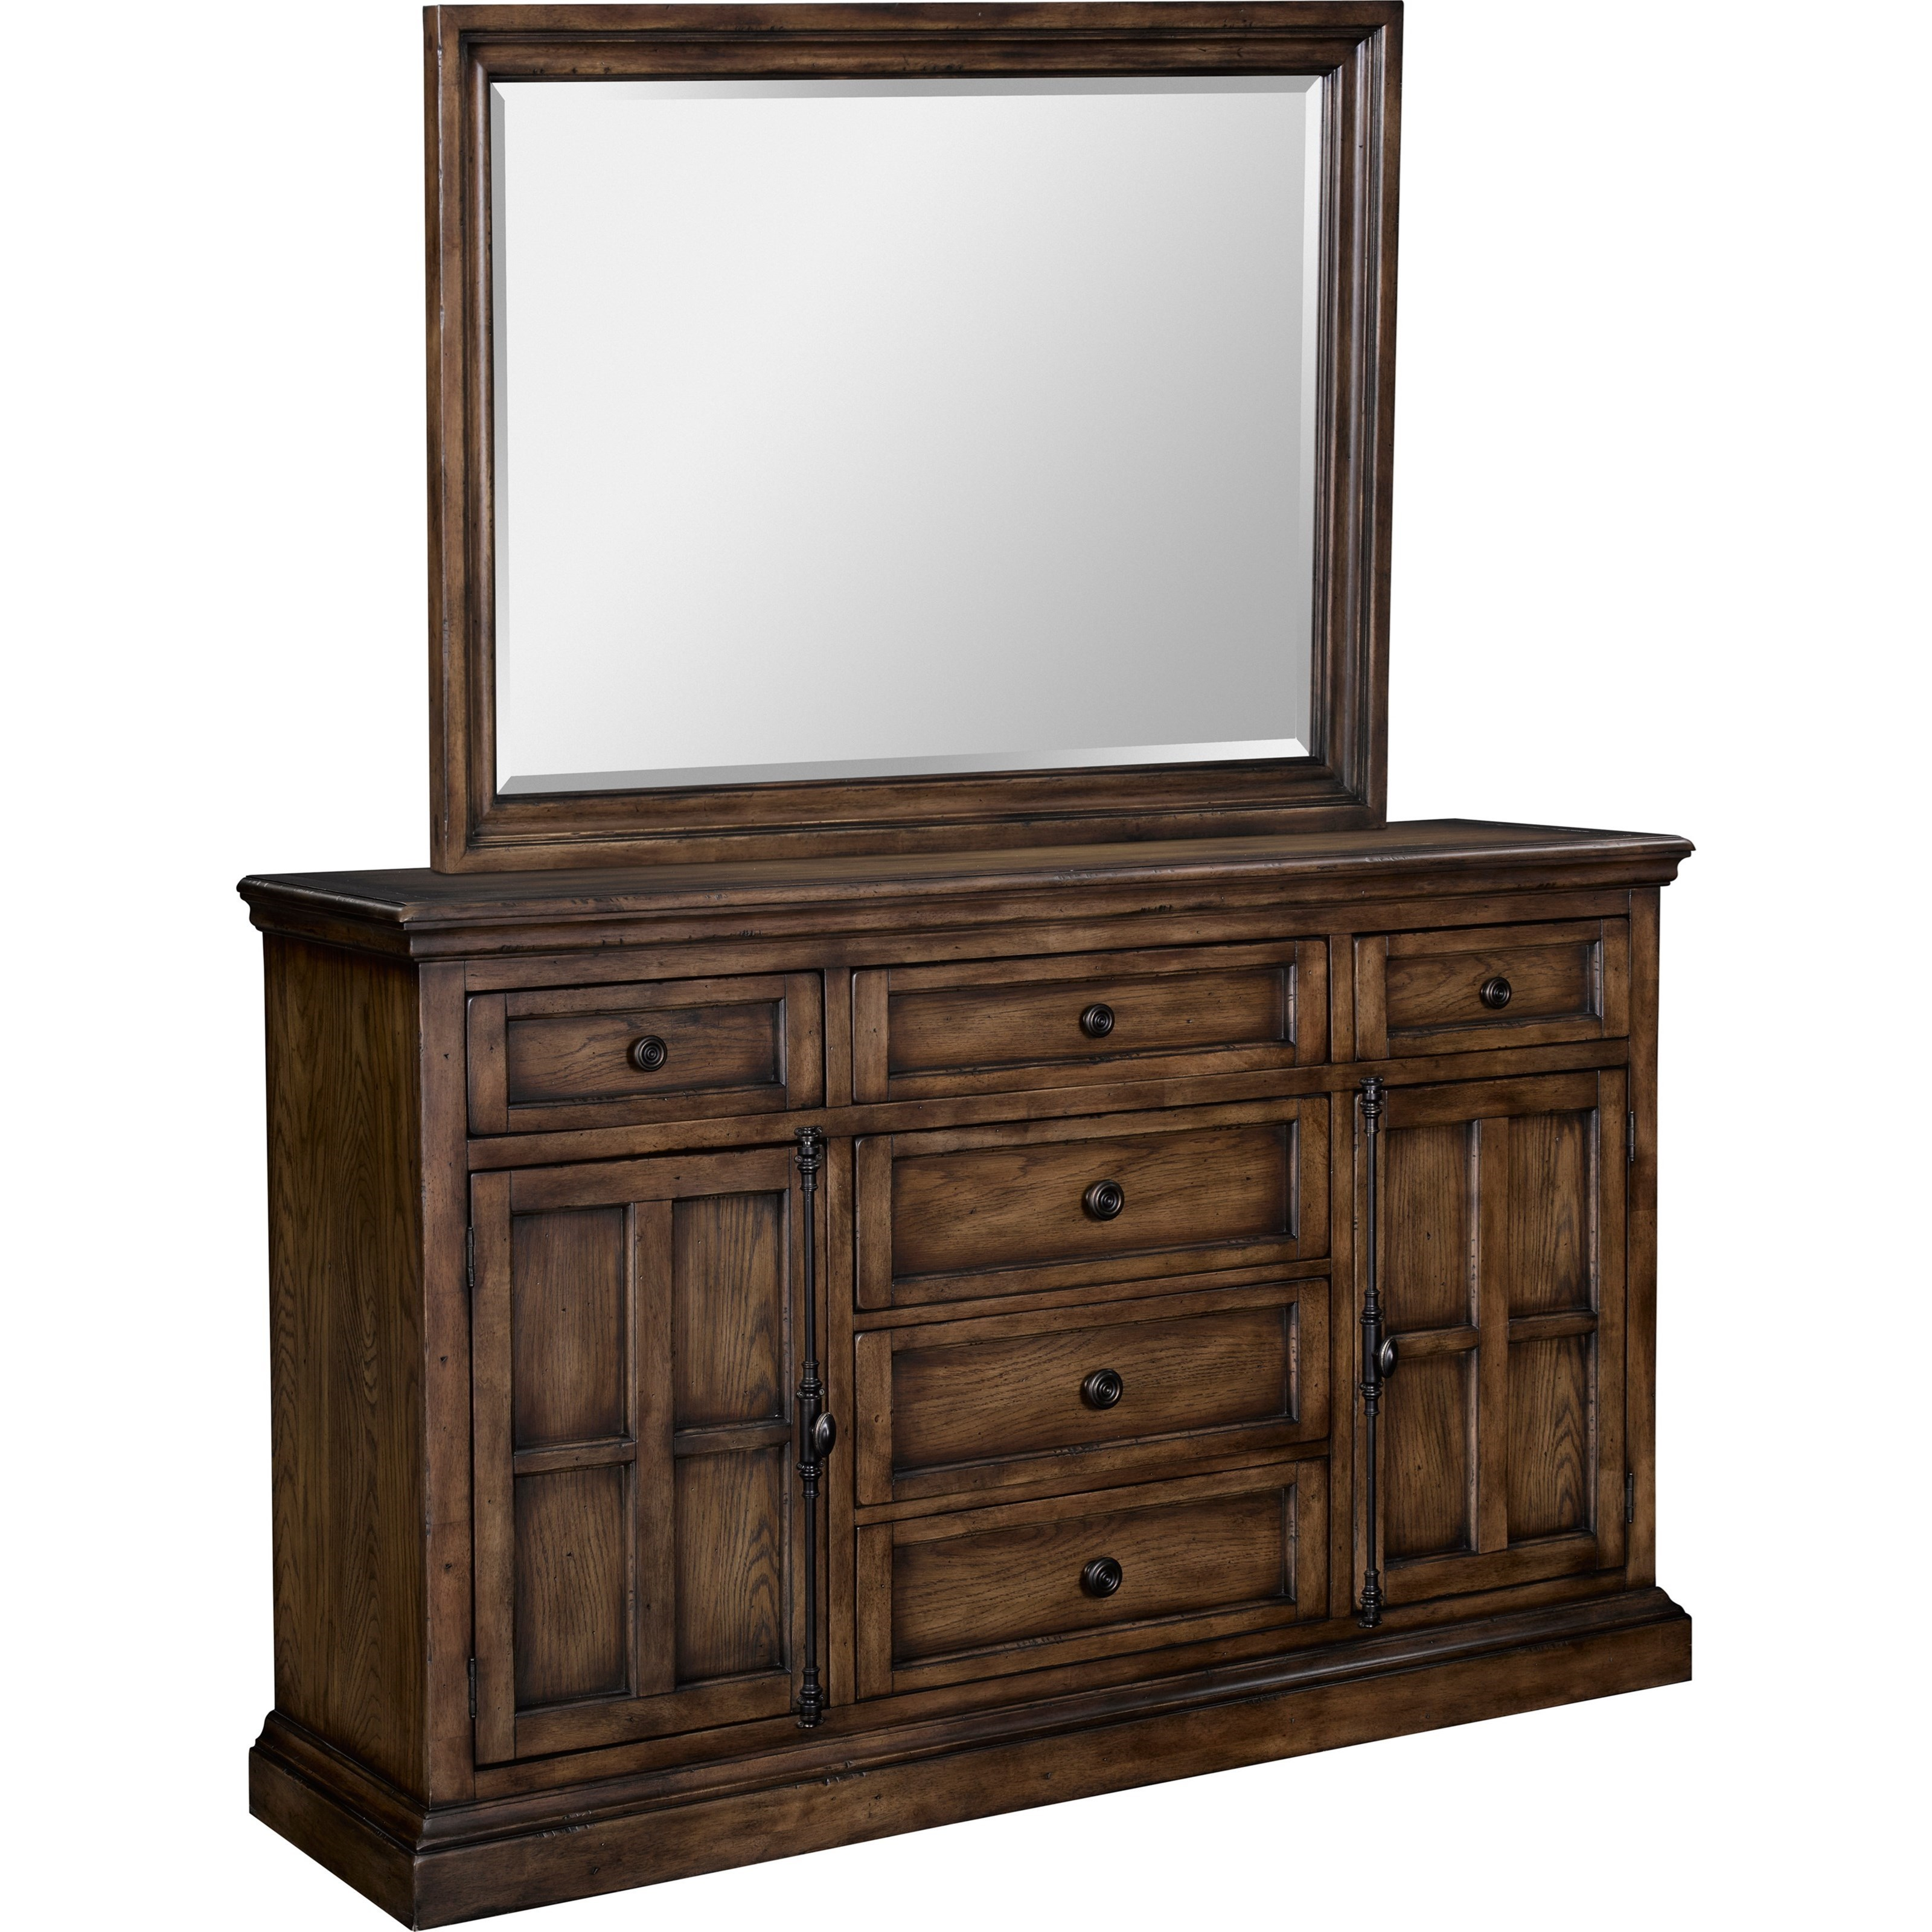 Broyhill furniture pike place grand dresser and beveled for Place furniture